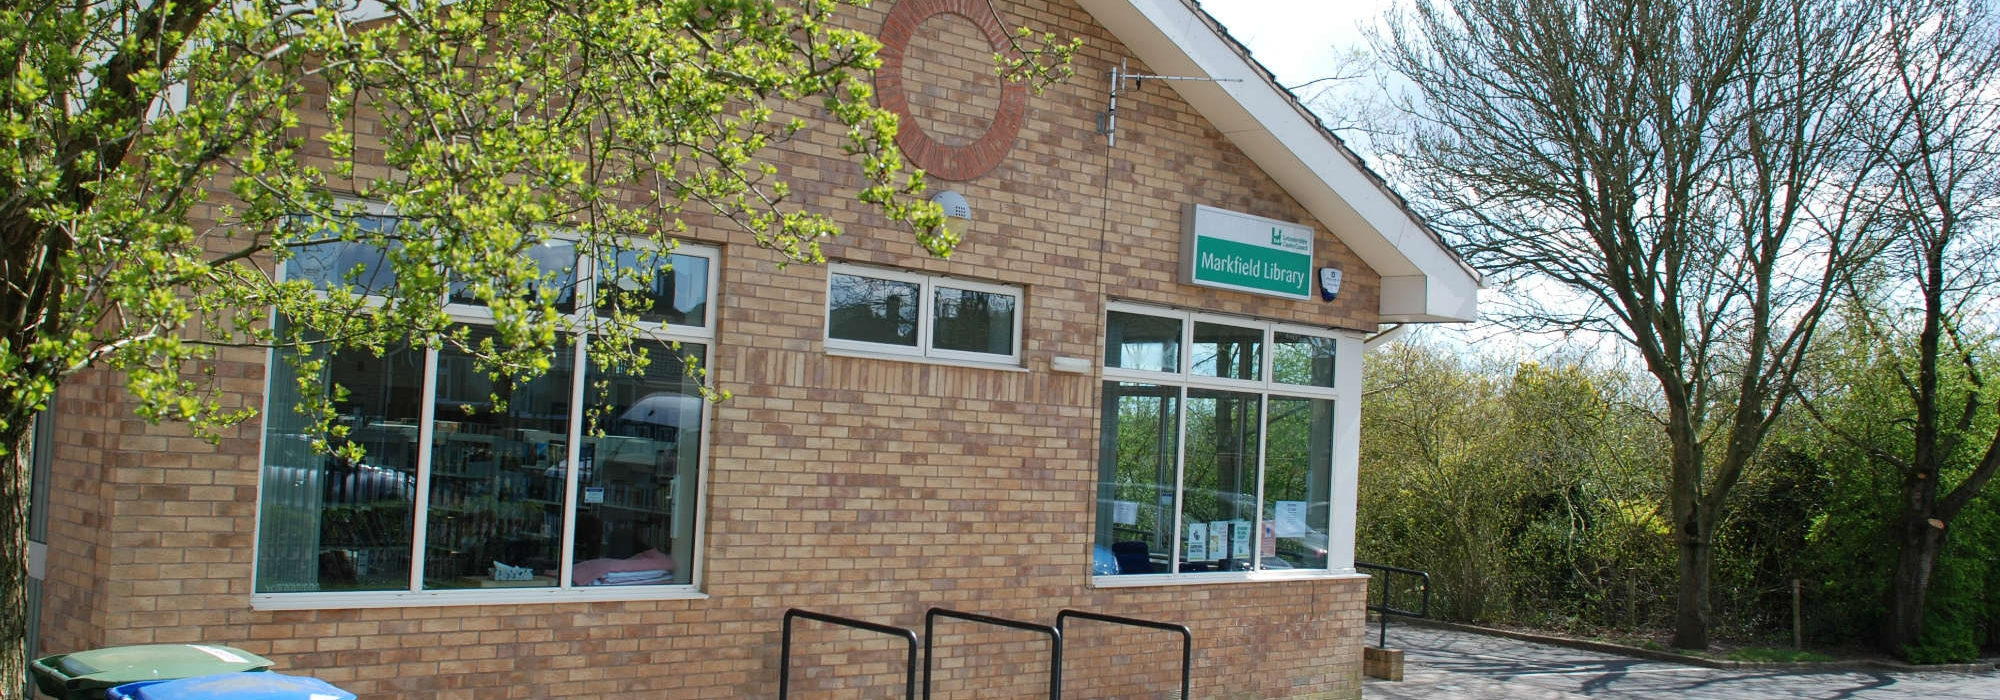 Markfield Library, side of the building can be seen, bike racks also can be seen up against the library wall